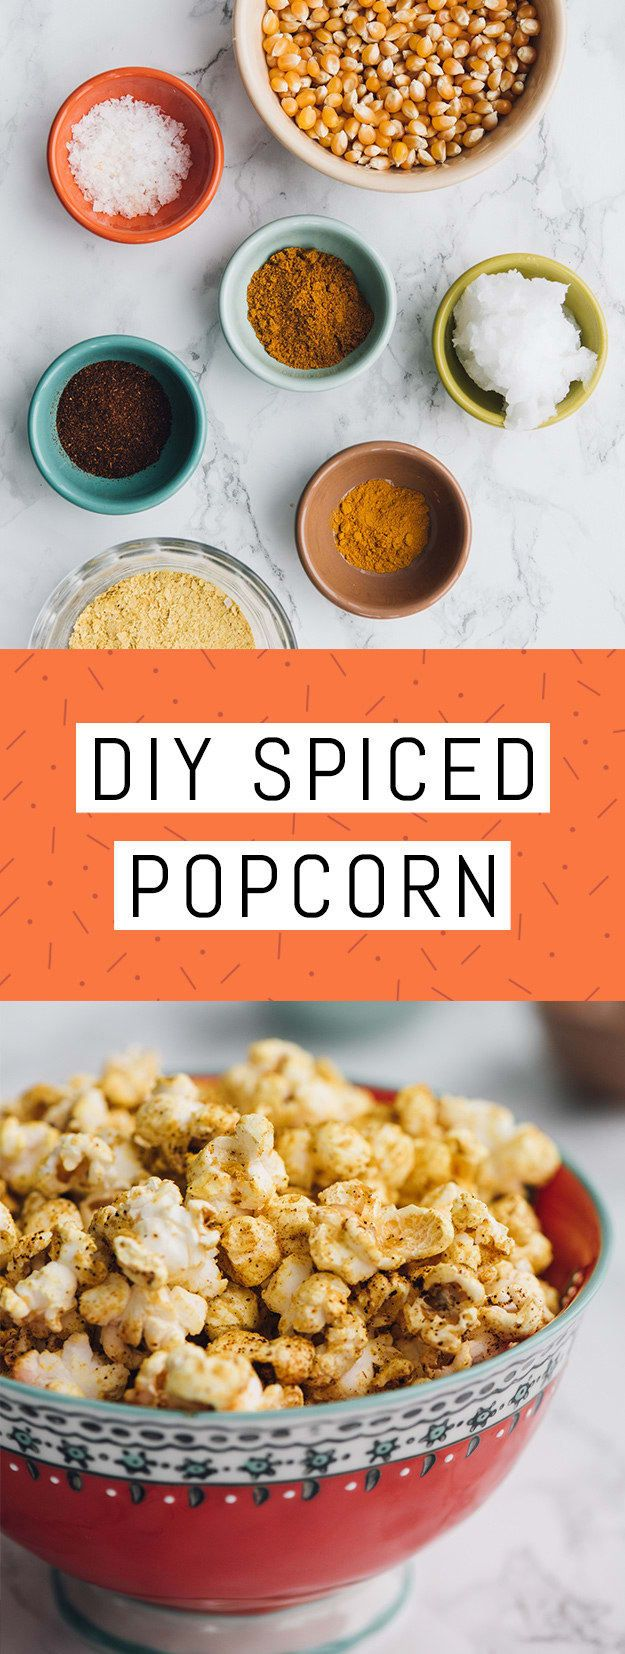 Ingredients: ¼ cup coconut oil, melted; 1 teaspoon chili powder; 1 teaspoon curry powder; ½ teaspoon kosher salt; ¼ teaspoon ground turmeric; ¼ cup nutritional yeast; ½ cup popcorn kernels.To make: In a small bowl combine chili powder, curry powder, salt, turmeric, and nutritional yeast. Set aside. Place 2 tablespoons of coconut oil and three popcorn kernels in a large heavy-bottomed pot over medium heat. Cover with lid and shake every 15 seconds. When all three kernels pop, the pot is hot…